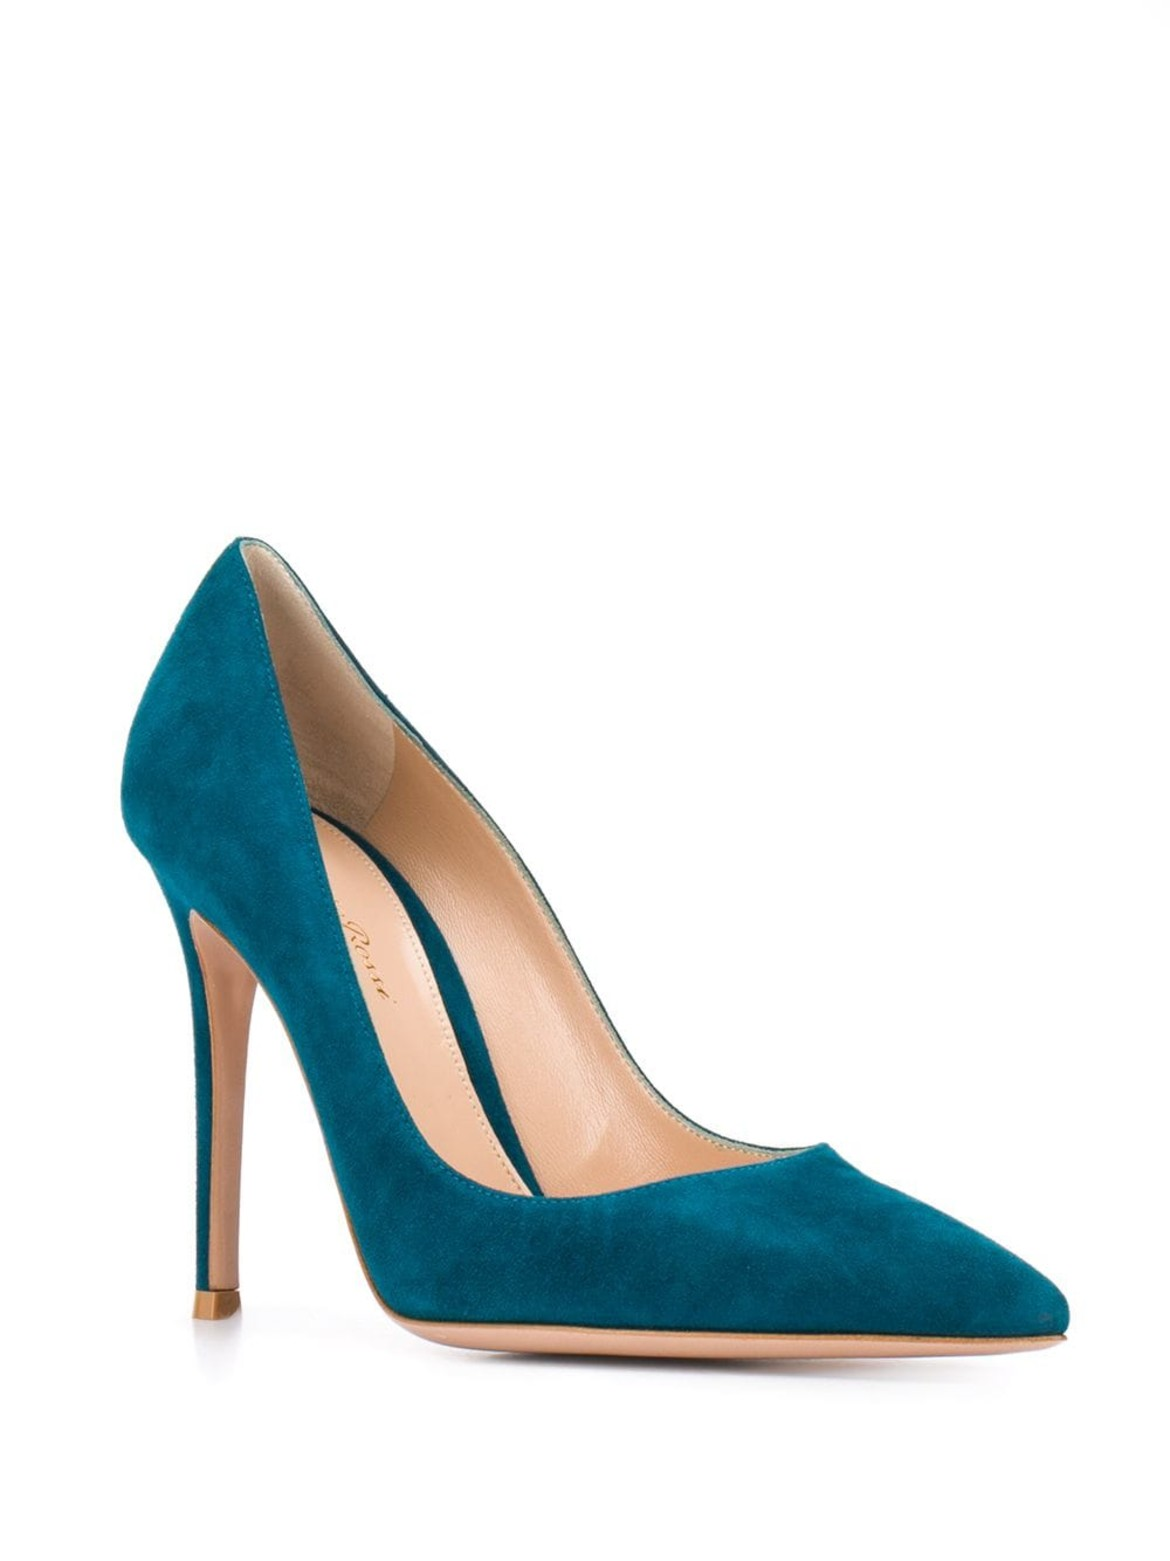 GIANVITO ROSSI pointed toe 105mm pumps HK$5,045 from farfetch